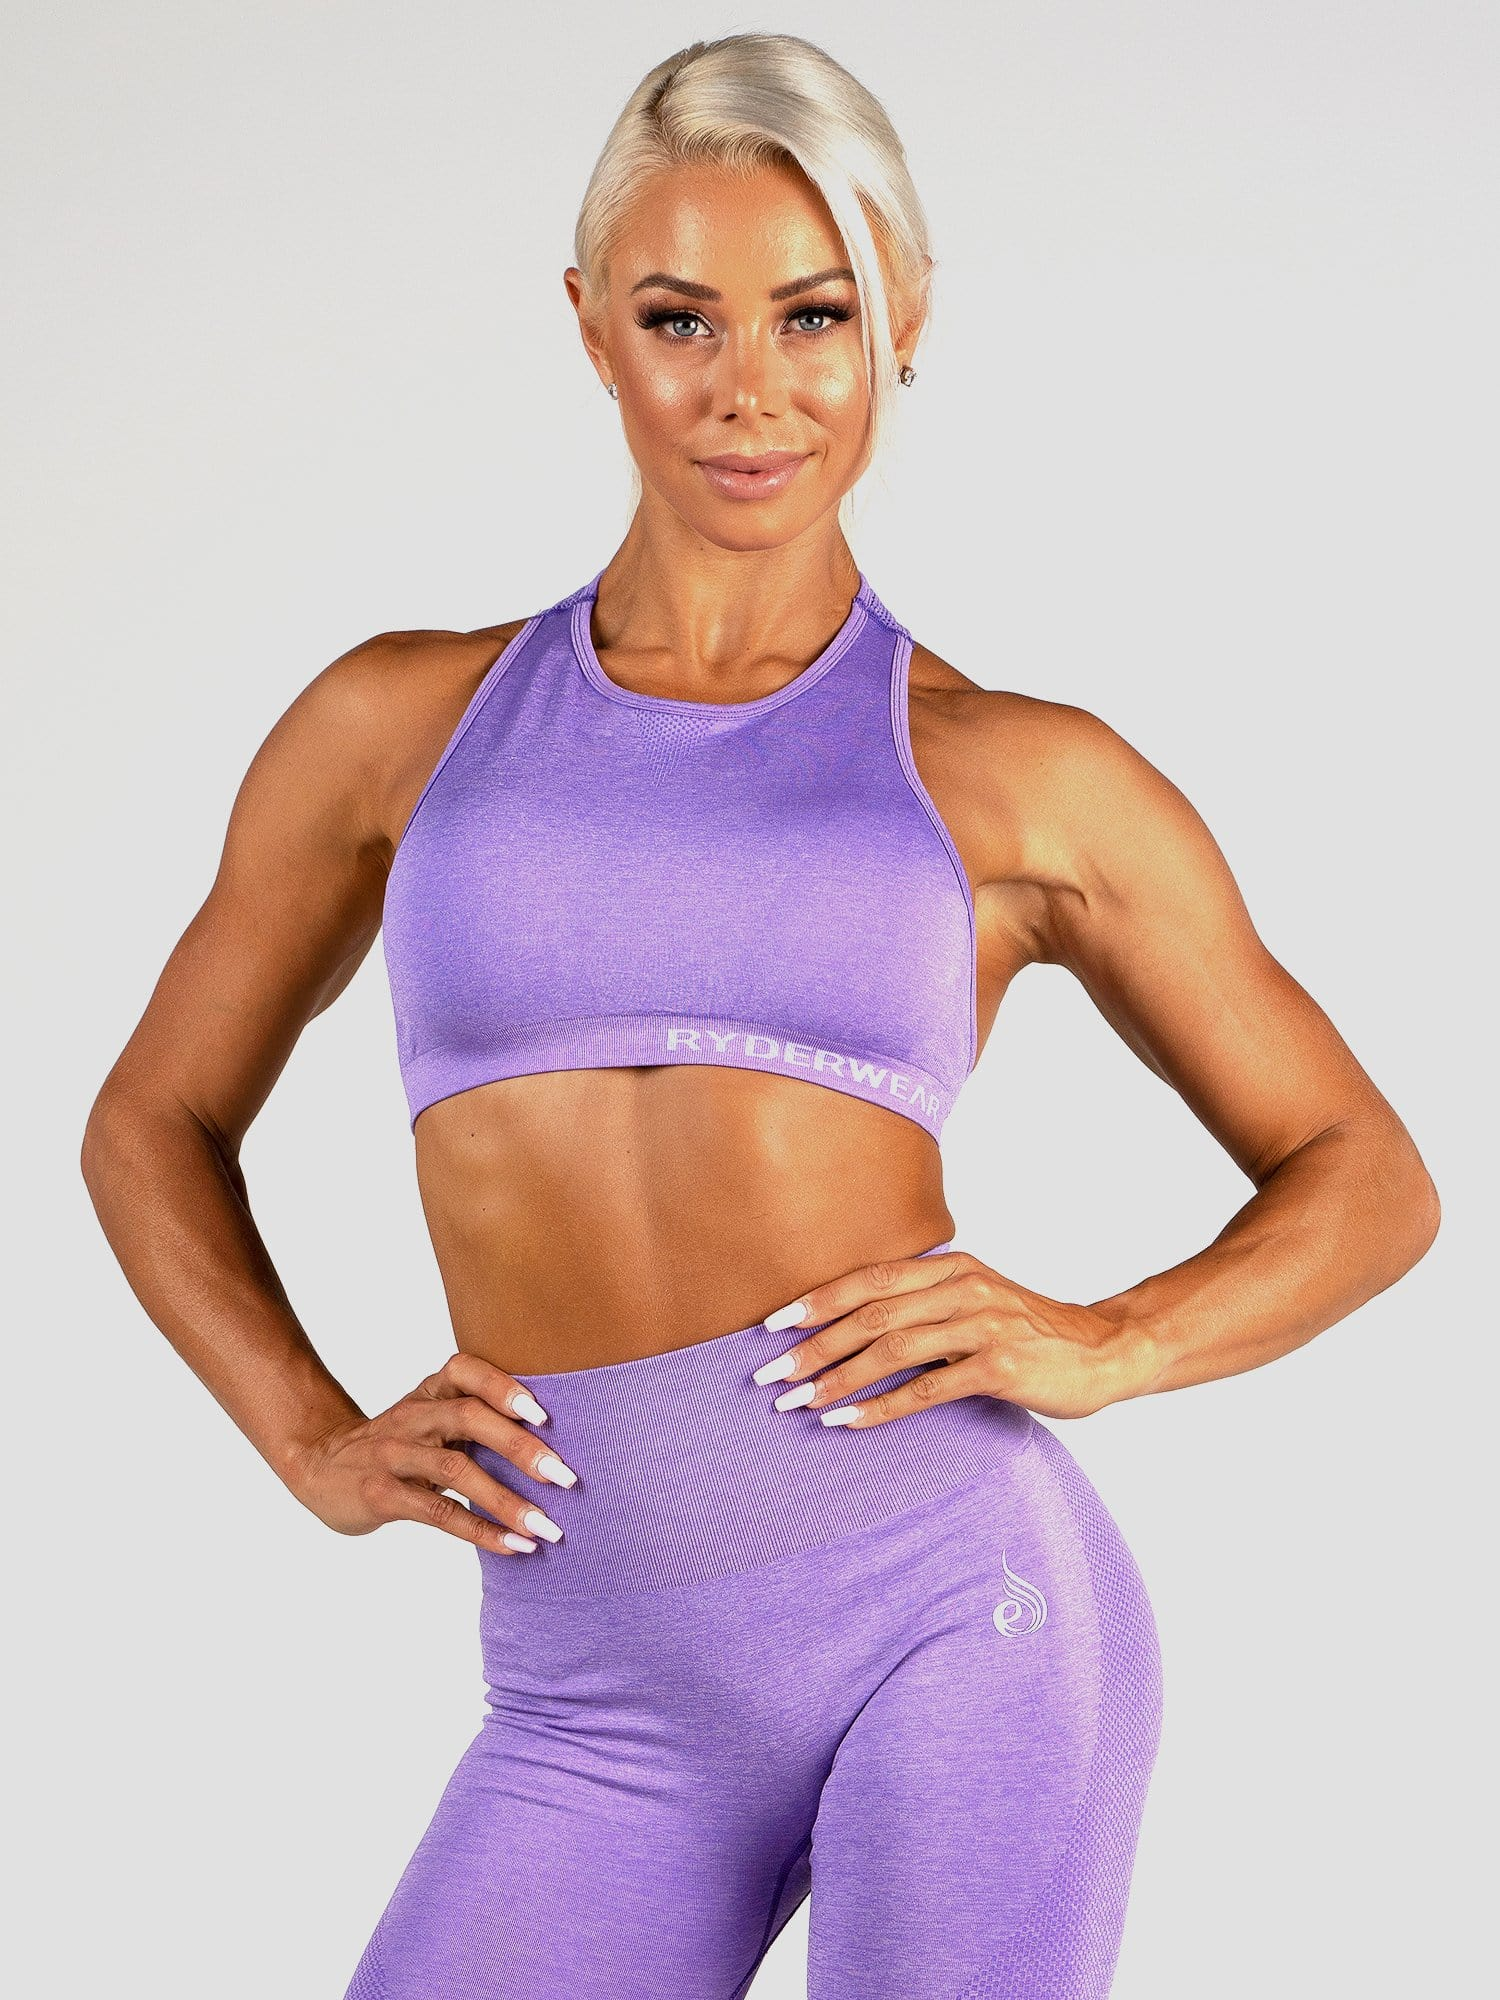 Seamless Sports Bra Purple Marl - Tonic UAE Seamless Sports Bra Purple Marl - Athletic Wear Tonic UAE - tonic athletic apparel Tonic UAE - tonic UAE